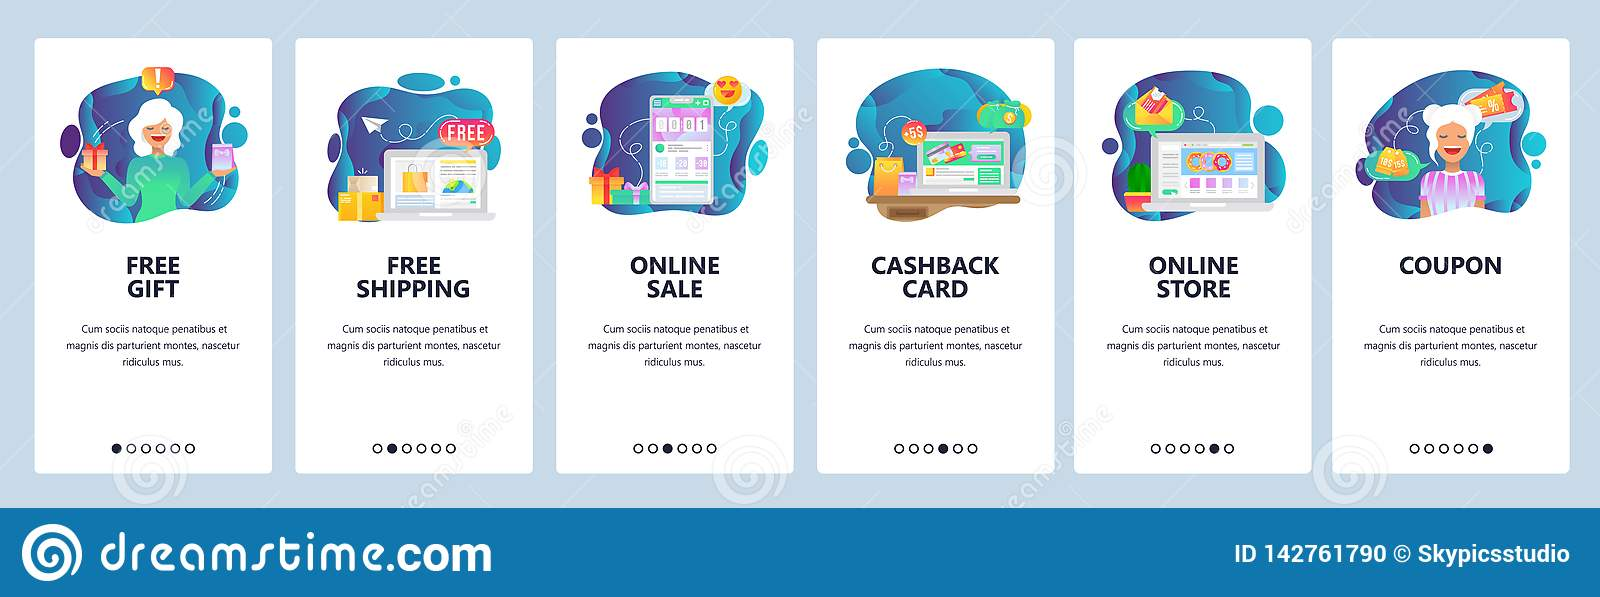 Mobile App Onboarding Screens Online Shopping And Payment